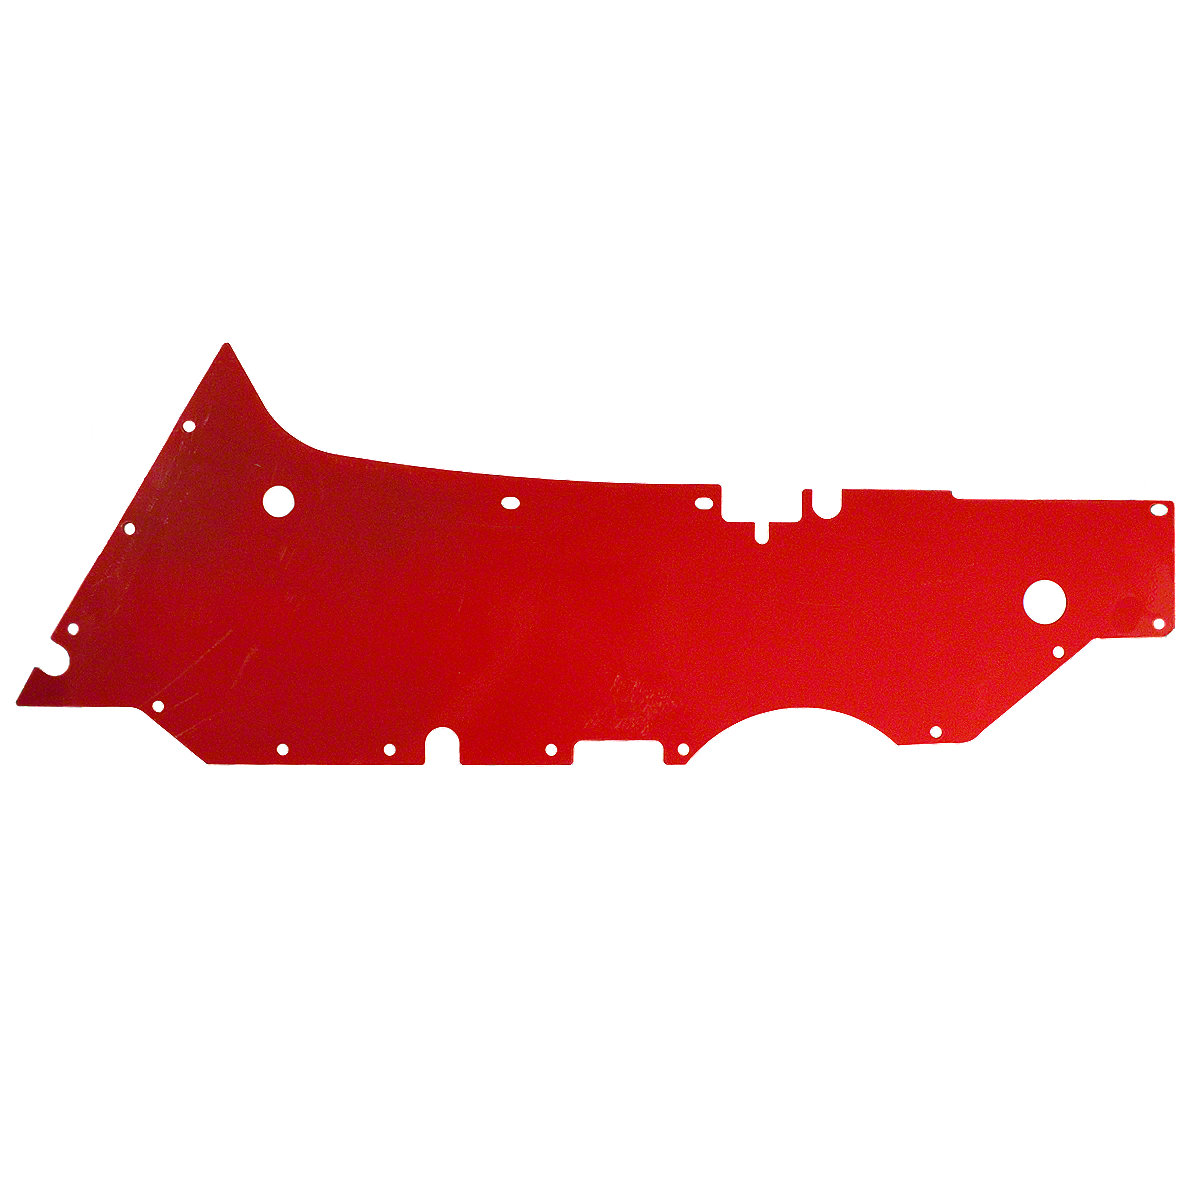 Right Hand Side Panel For Allis Chalmers: D14, D15, I60.